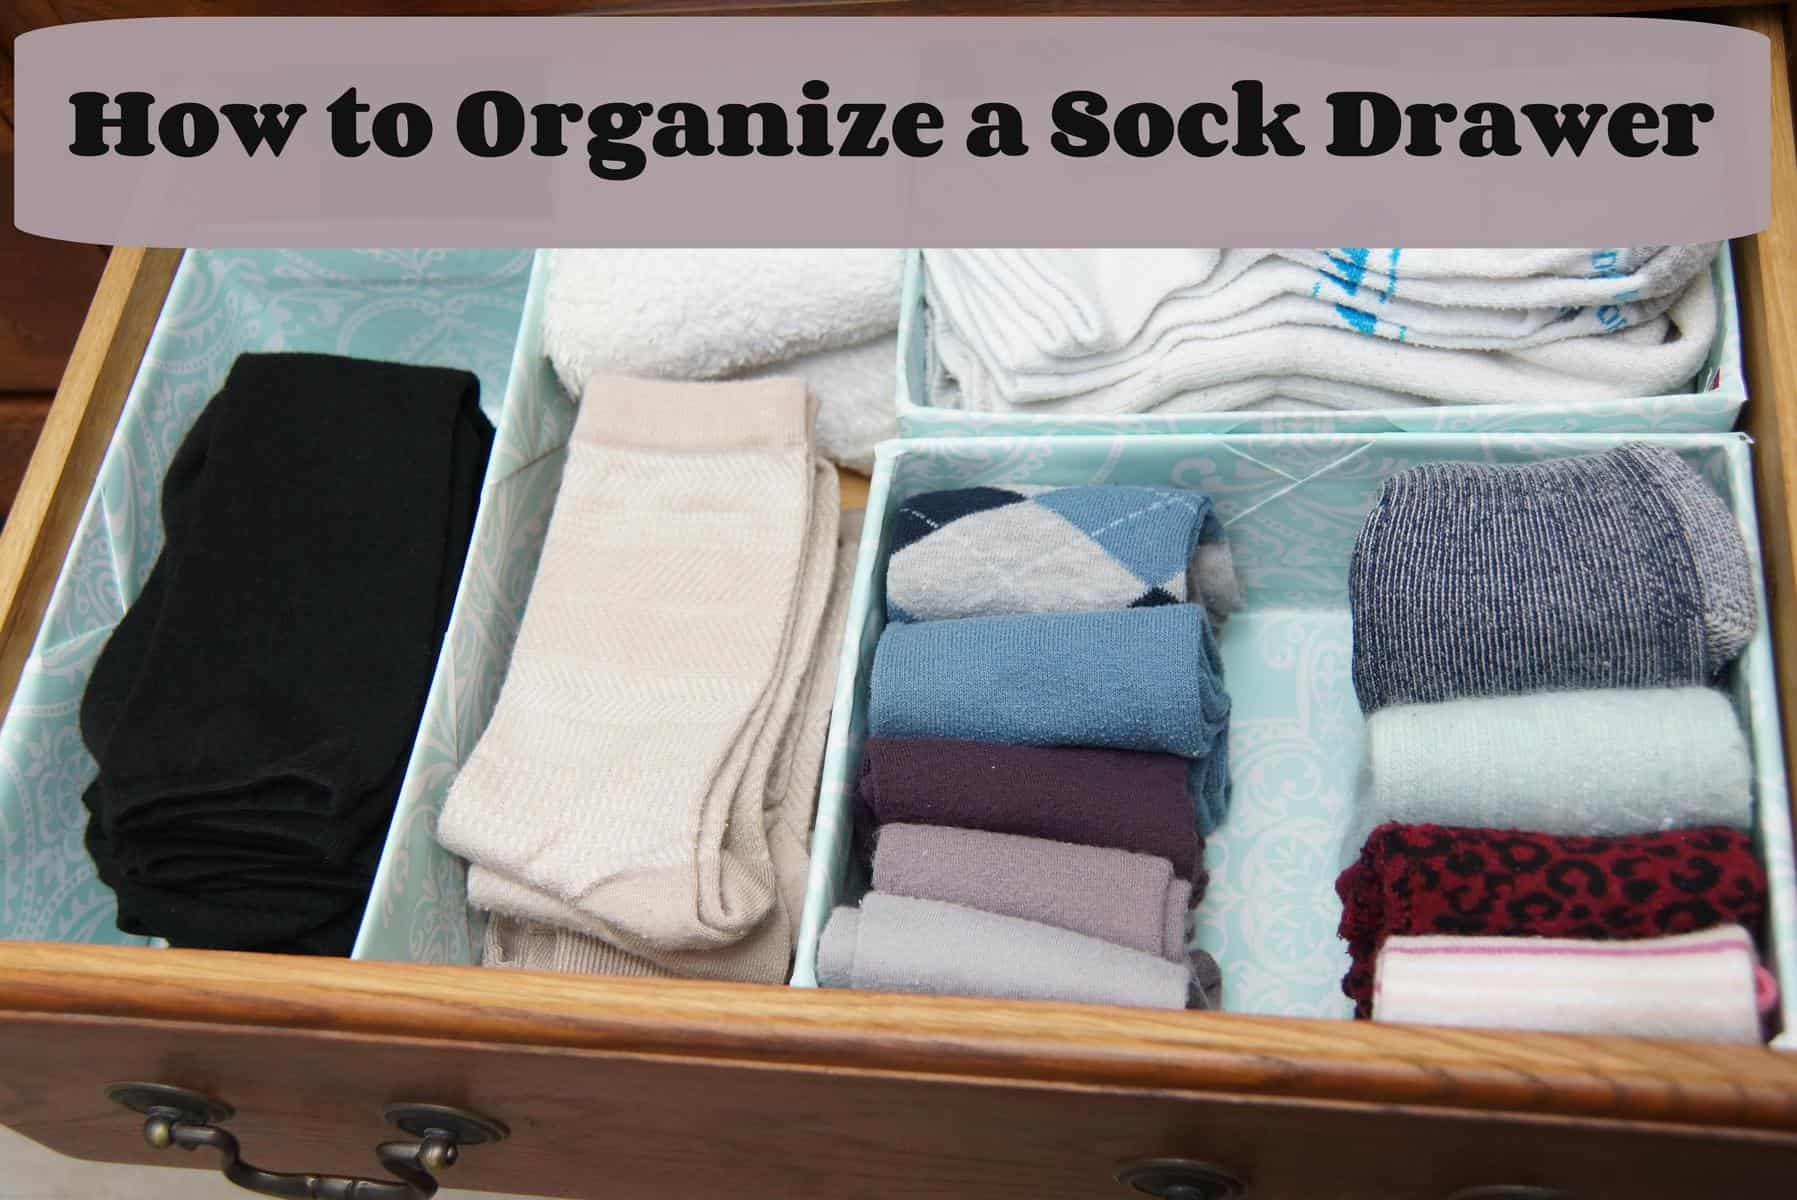 Time to Organize the Sock Drawer | HeartWork Organizing, Tips for ...